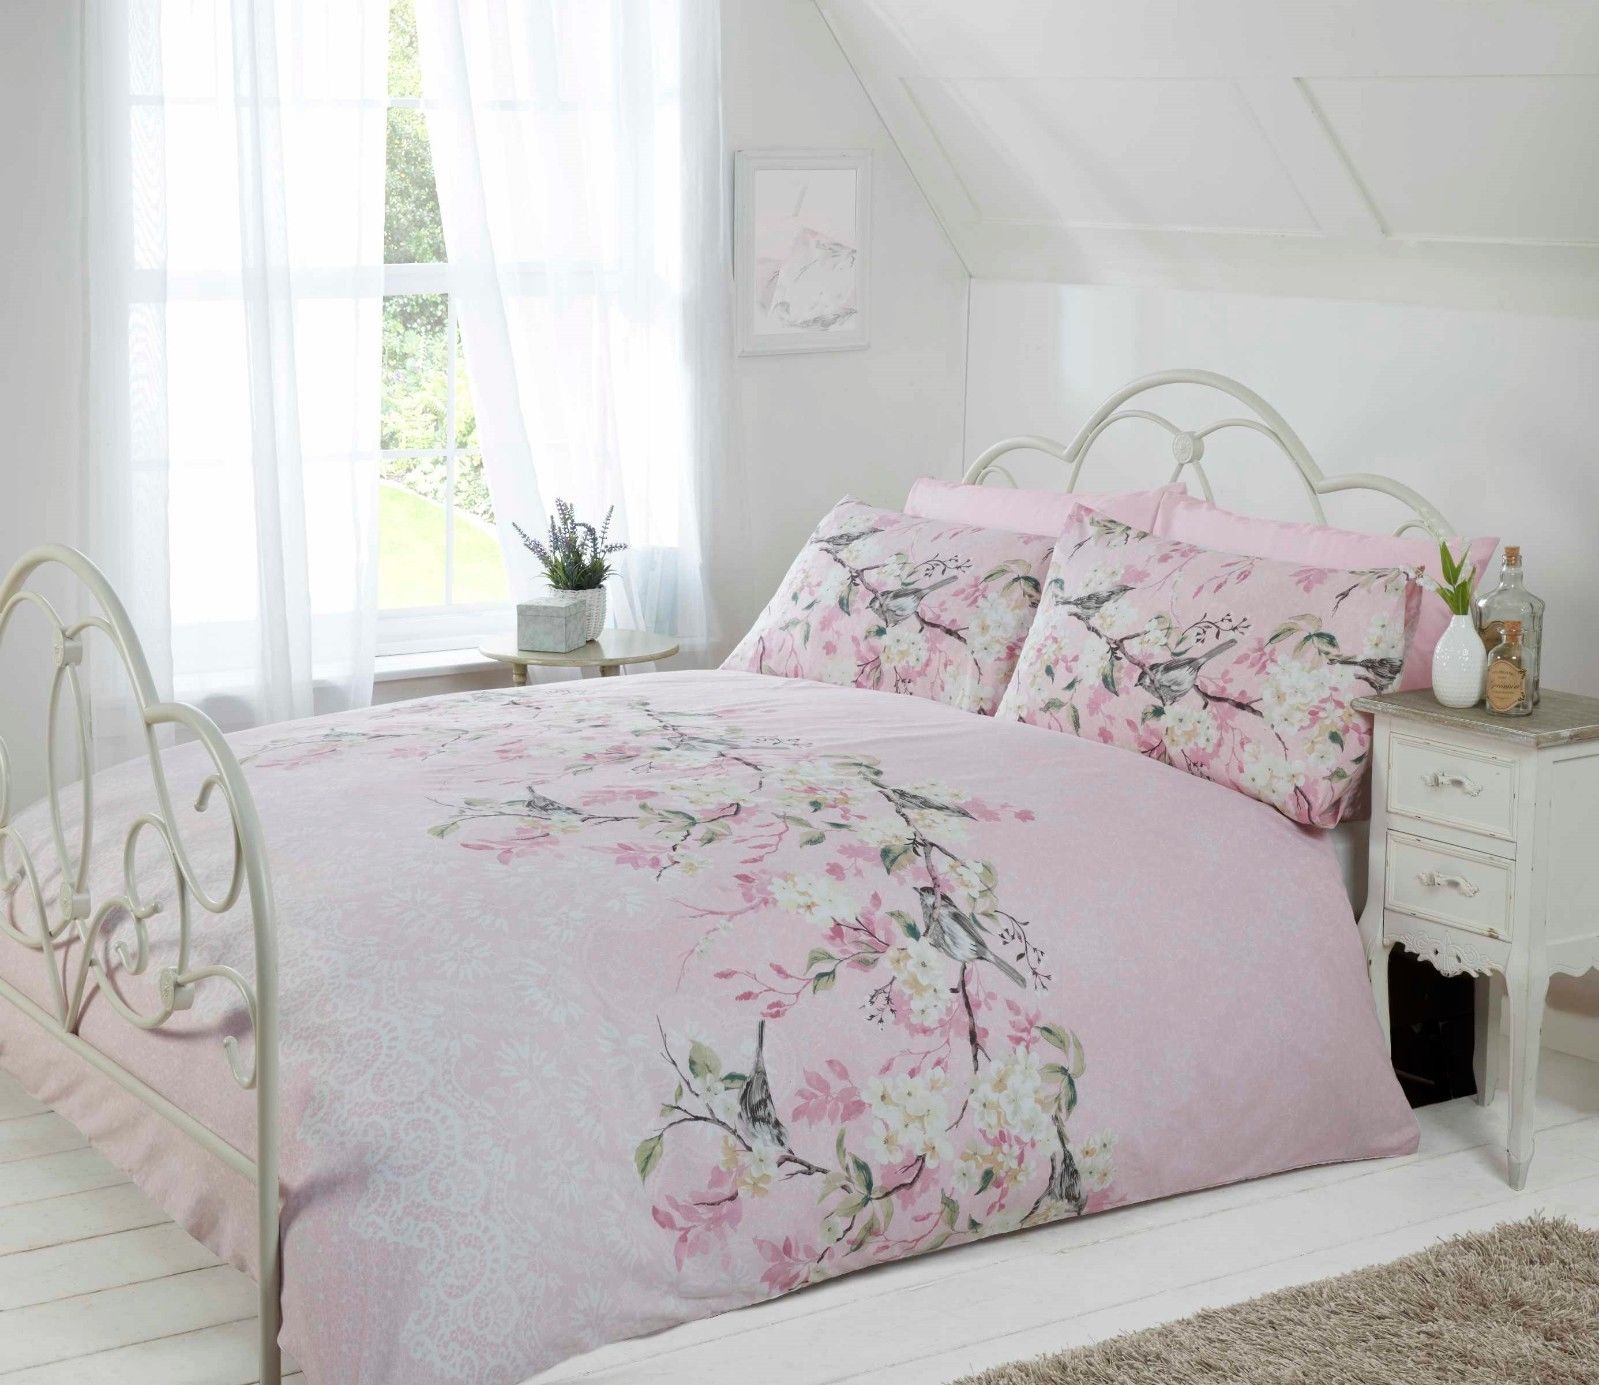 Vintage Inspired Classic Soft Pink Nursery: Rapport Eloise Vintage Floral Shabby Chic Blush/Soft Pink